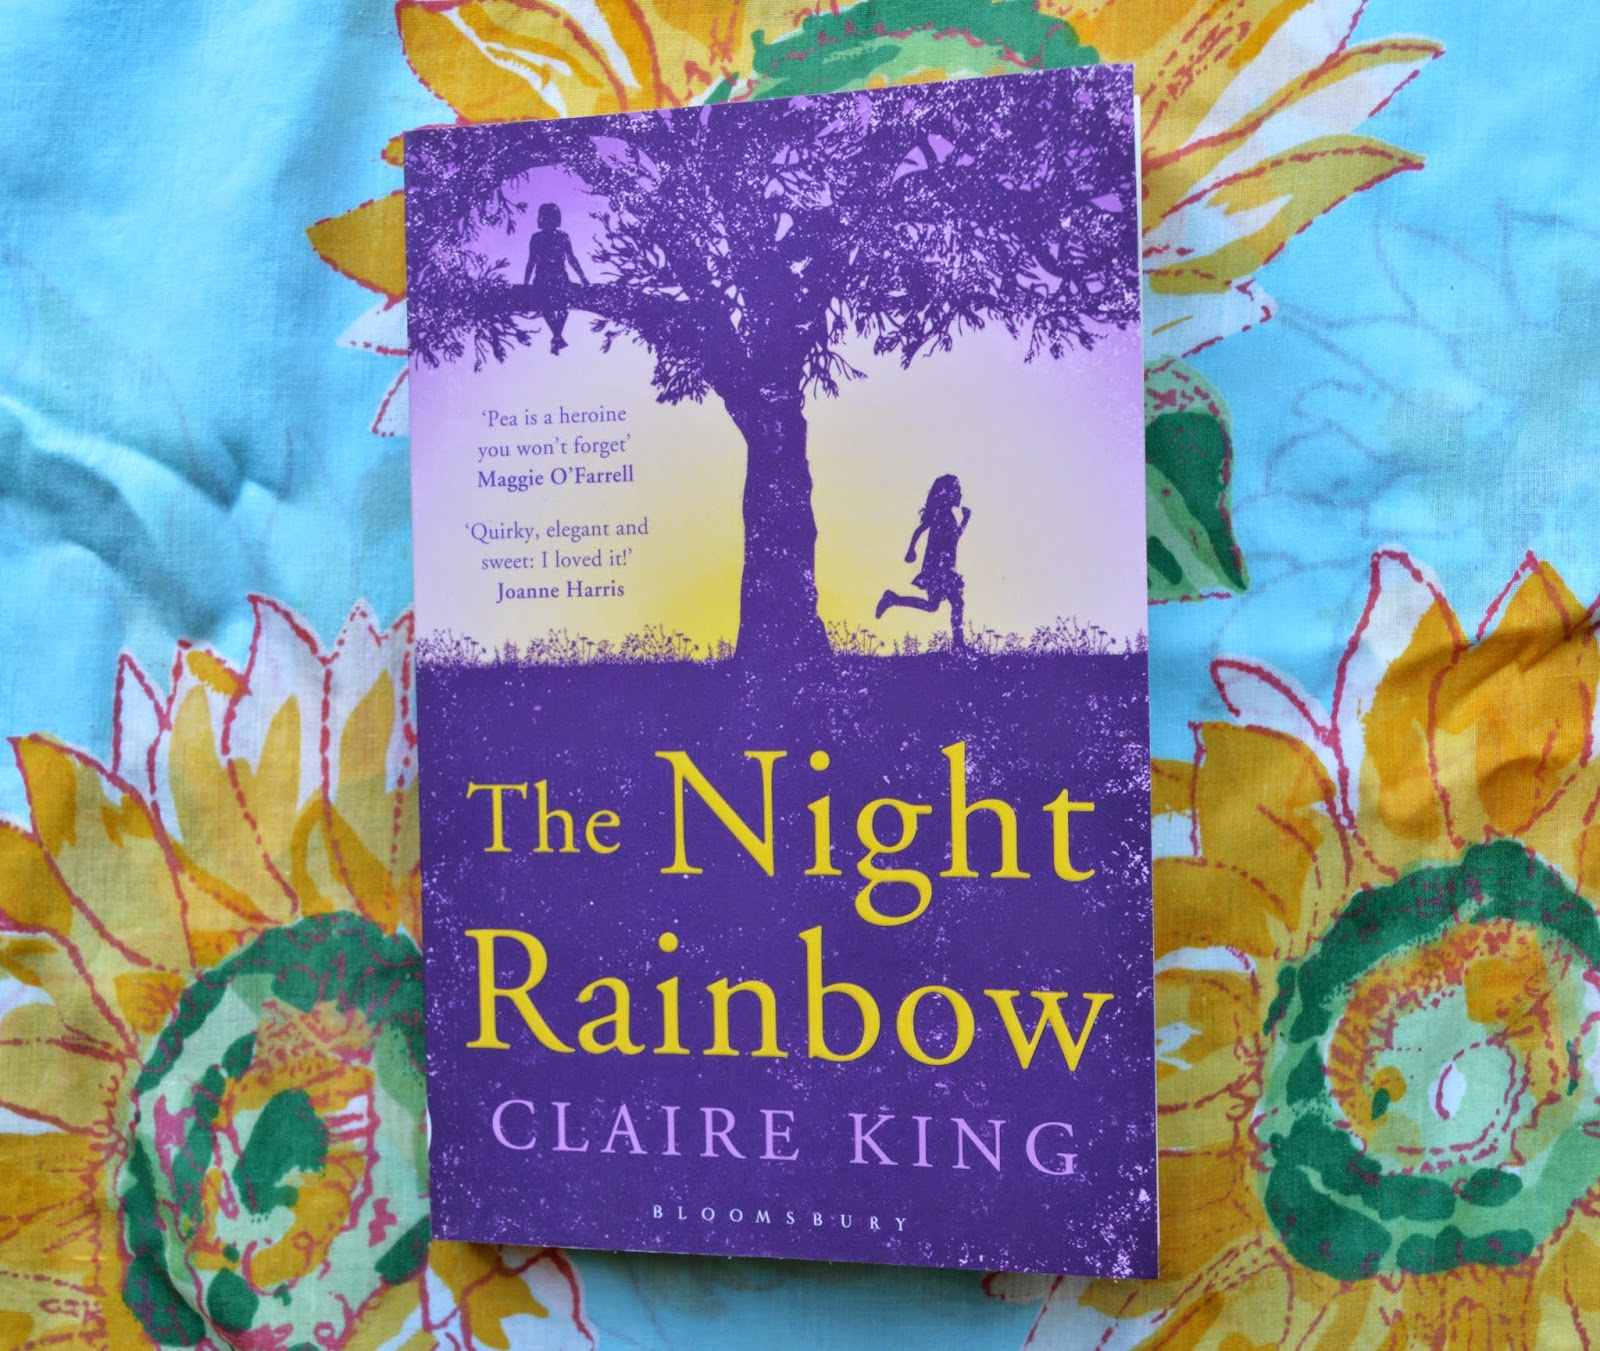 review, The Night Rainbow, fiction, novel, literature, review, book, opinion, plot, paperback, cover, UK edition, Pea, Margot, Claude, childhood, motherhood, South of France